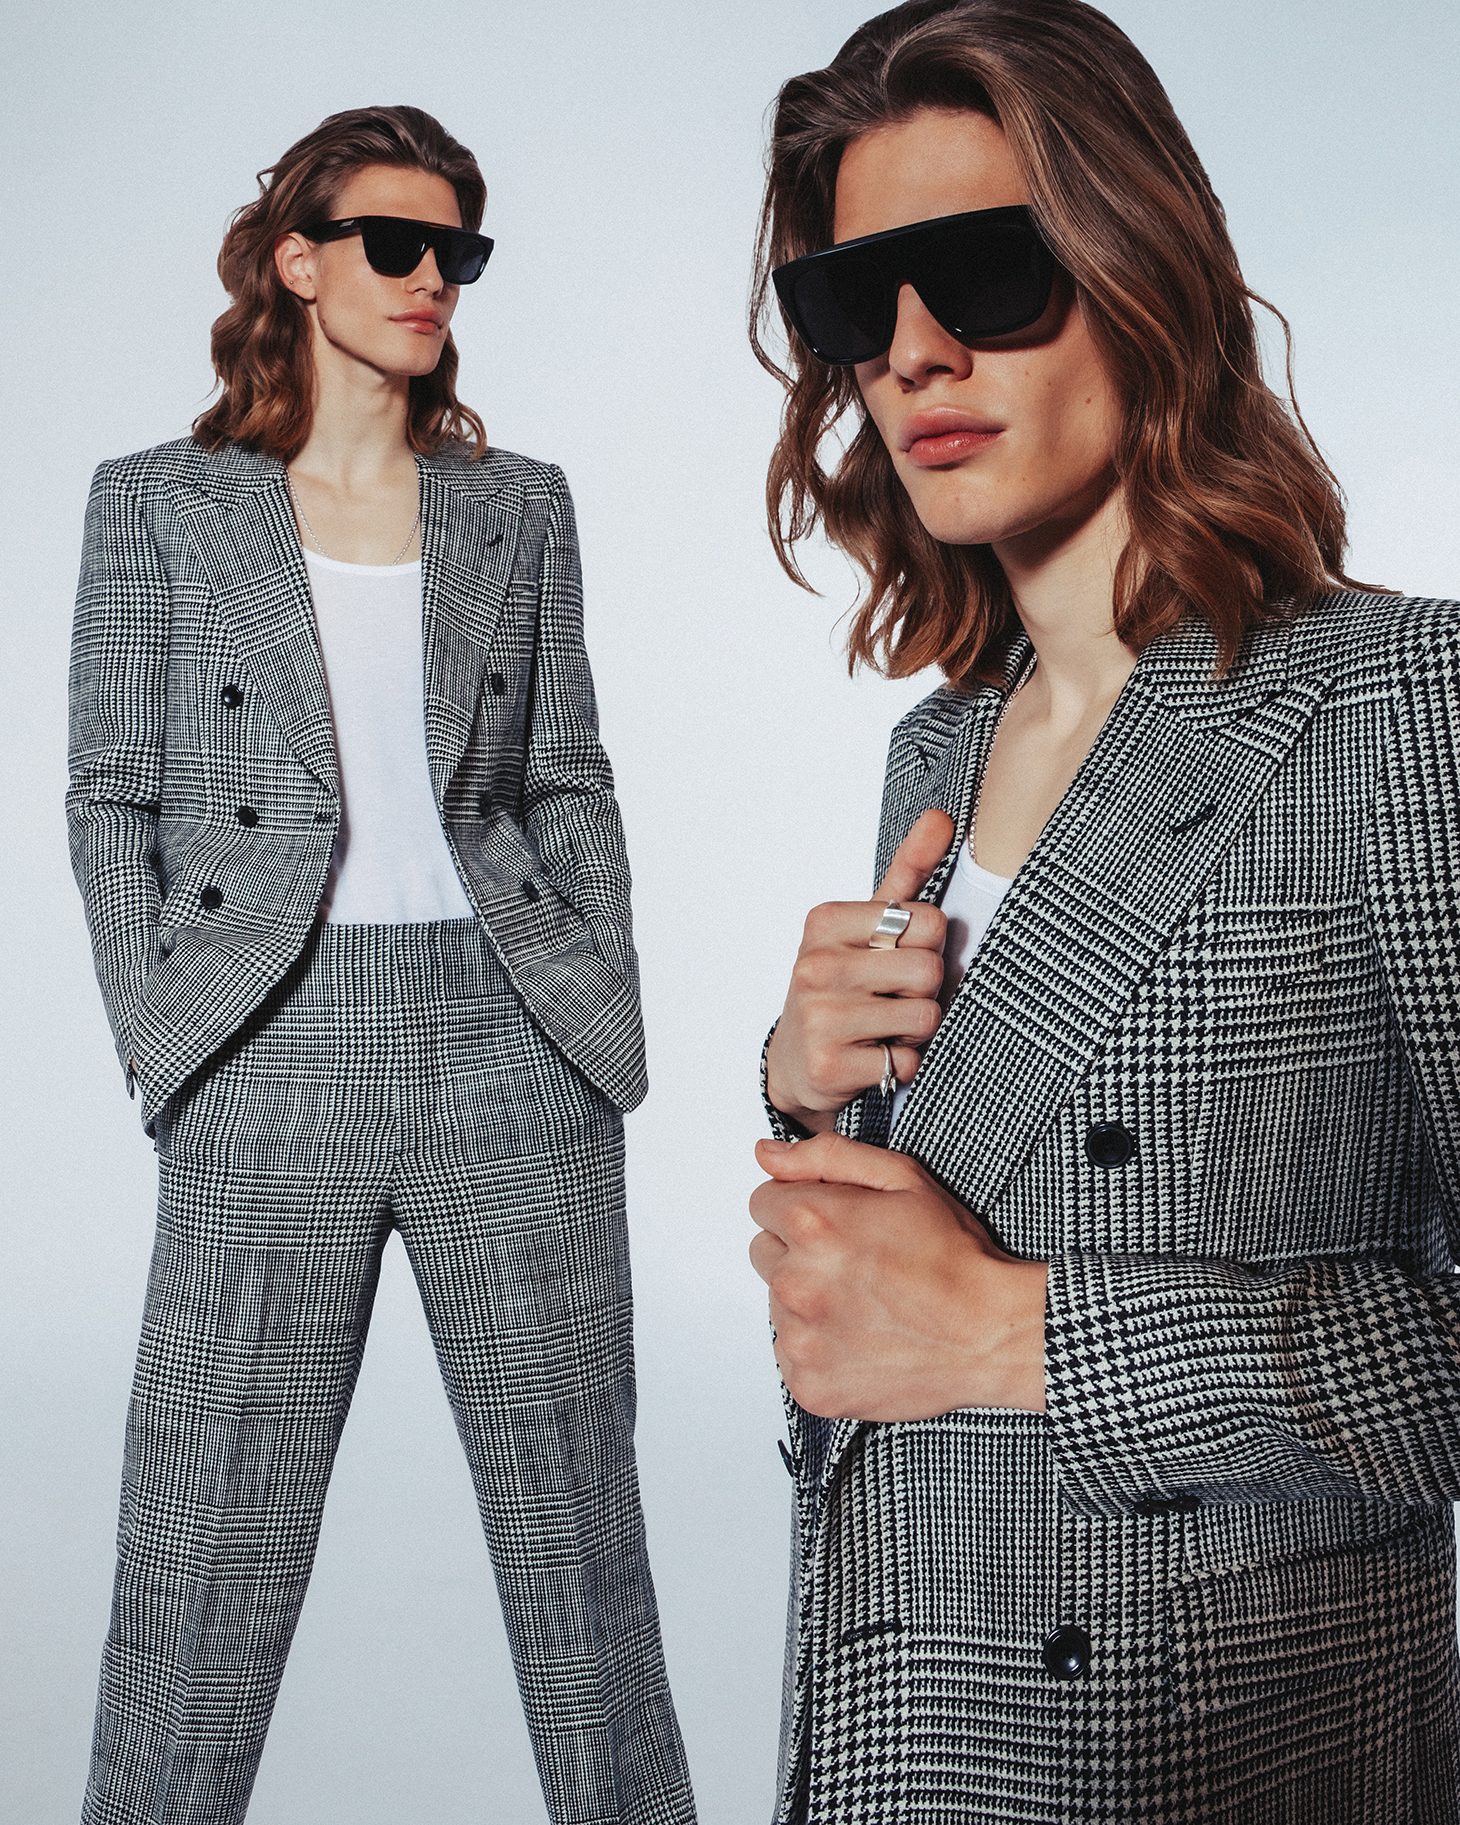 intersection magazine blue hair red green blue suit sunglasses mixed